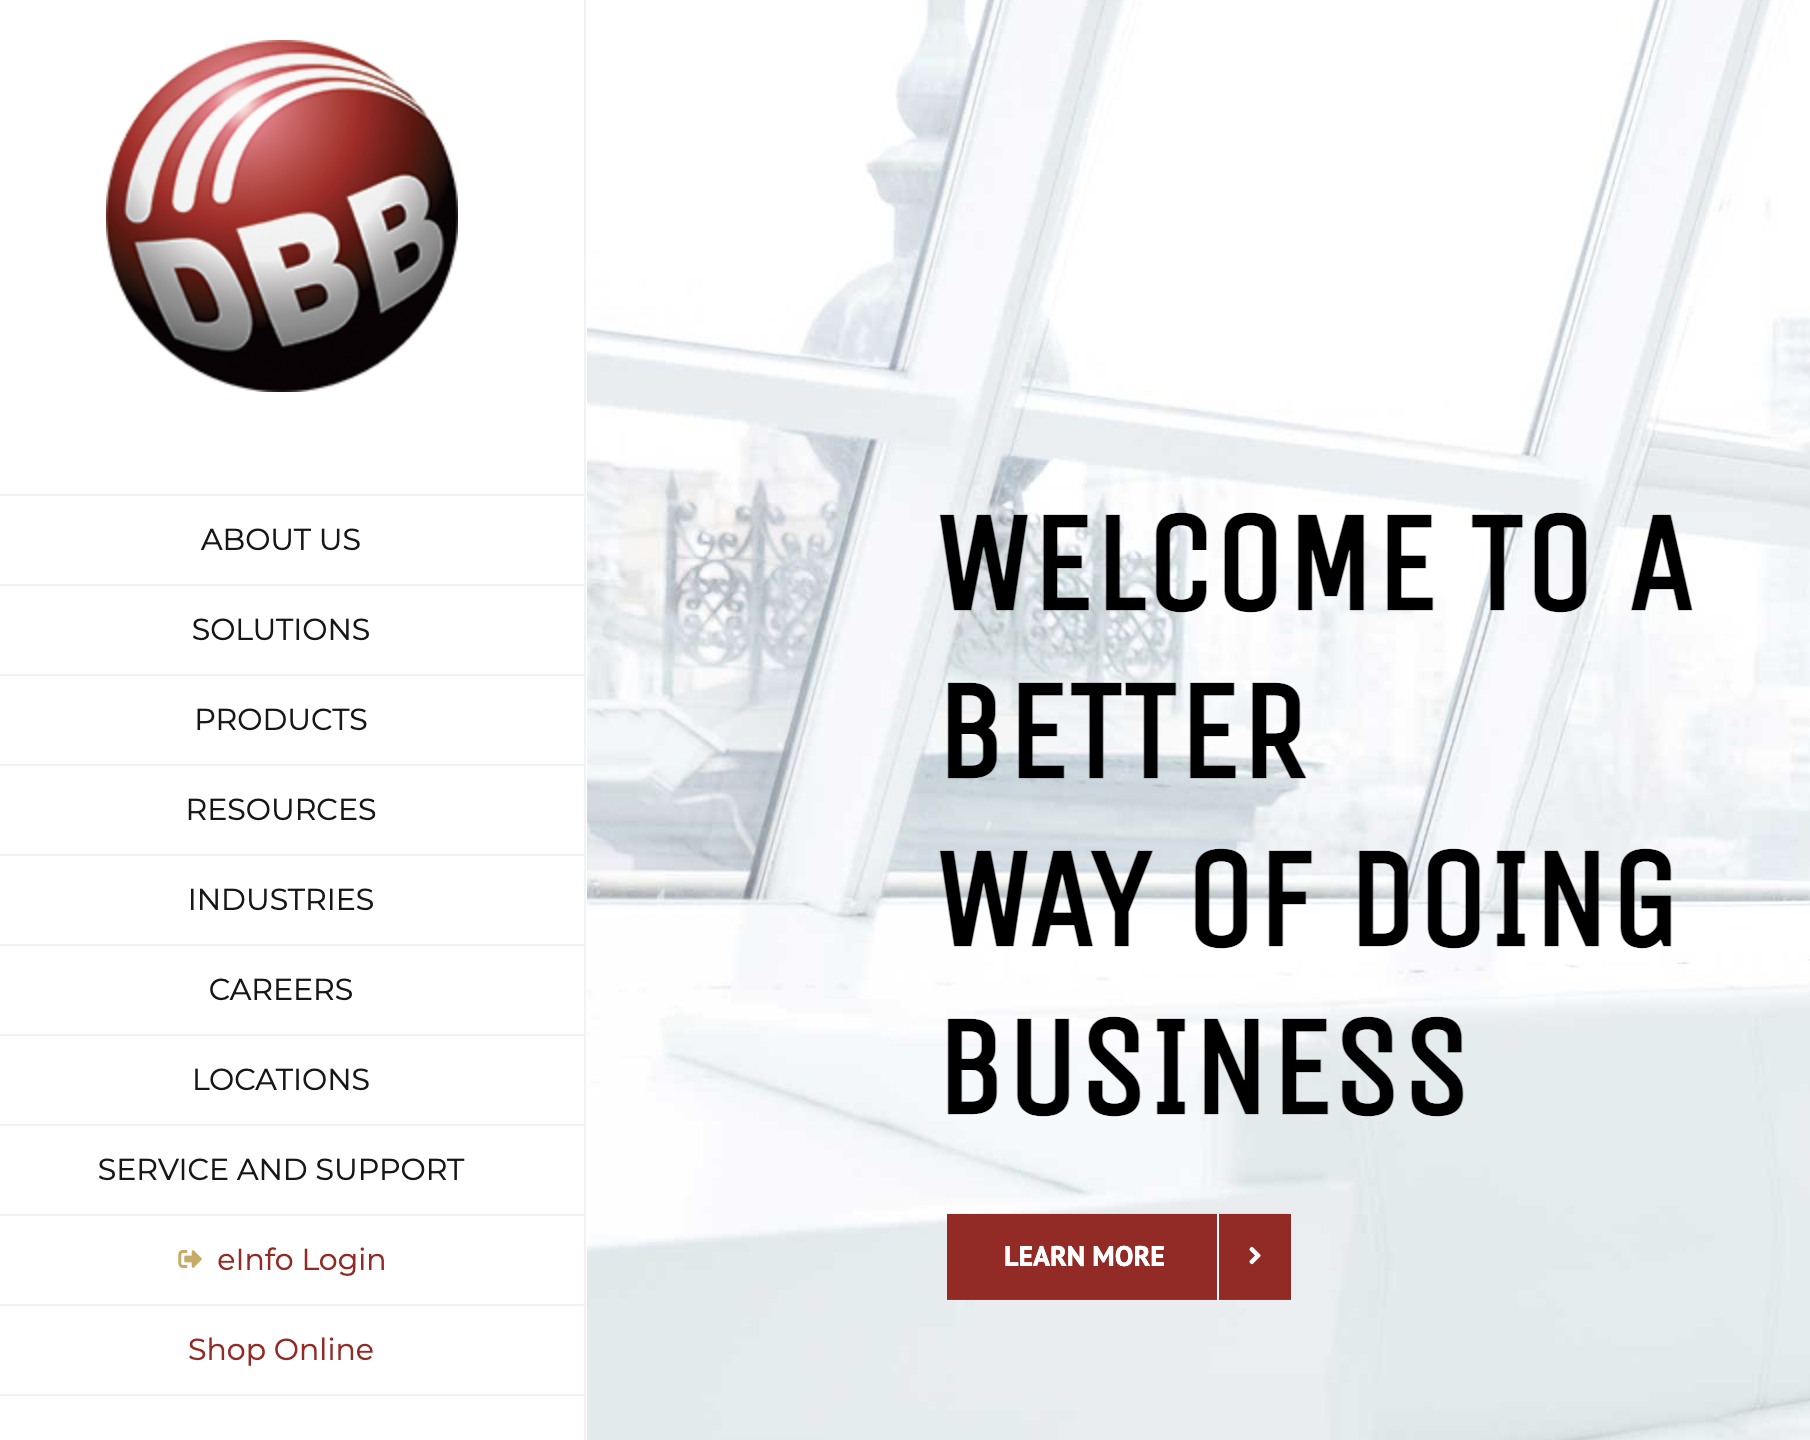 DBB Launches New Online Store